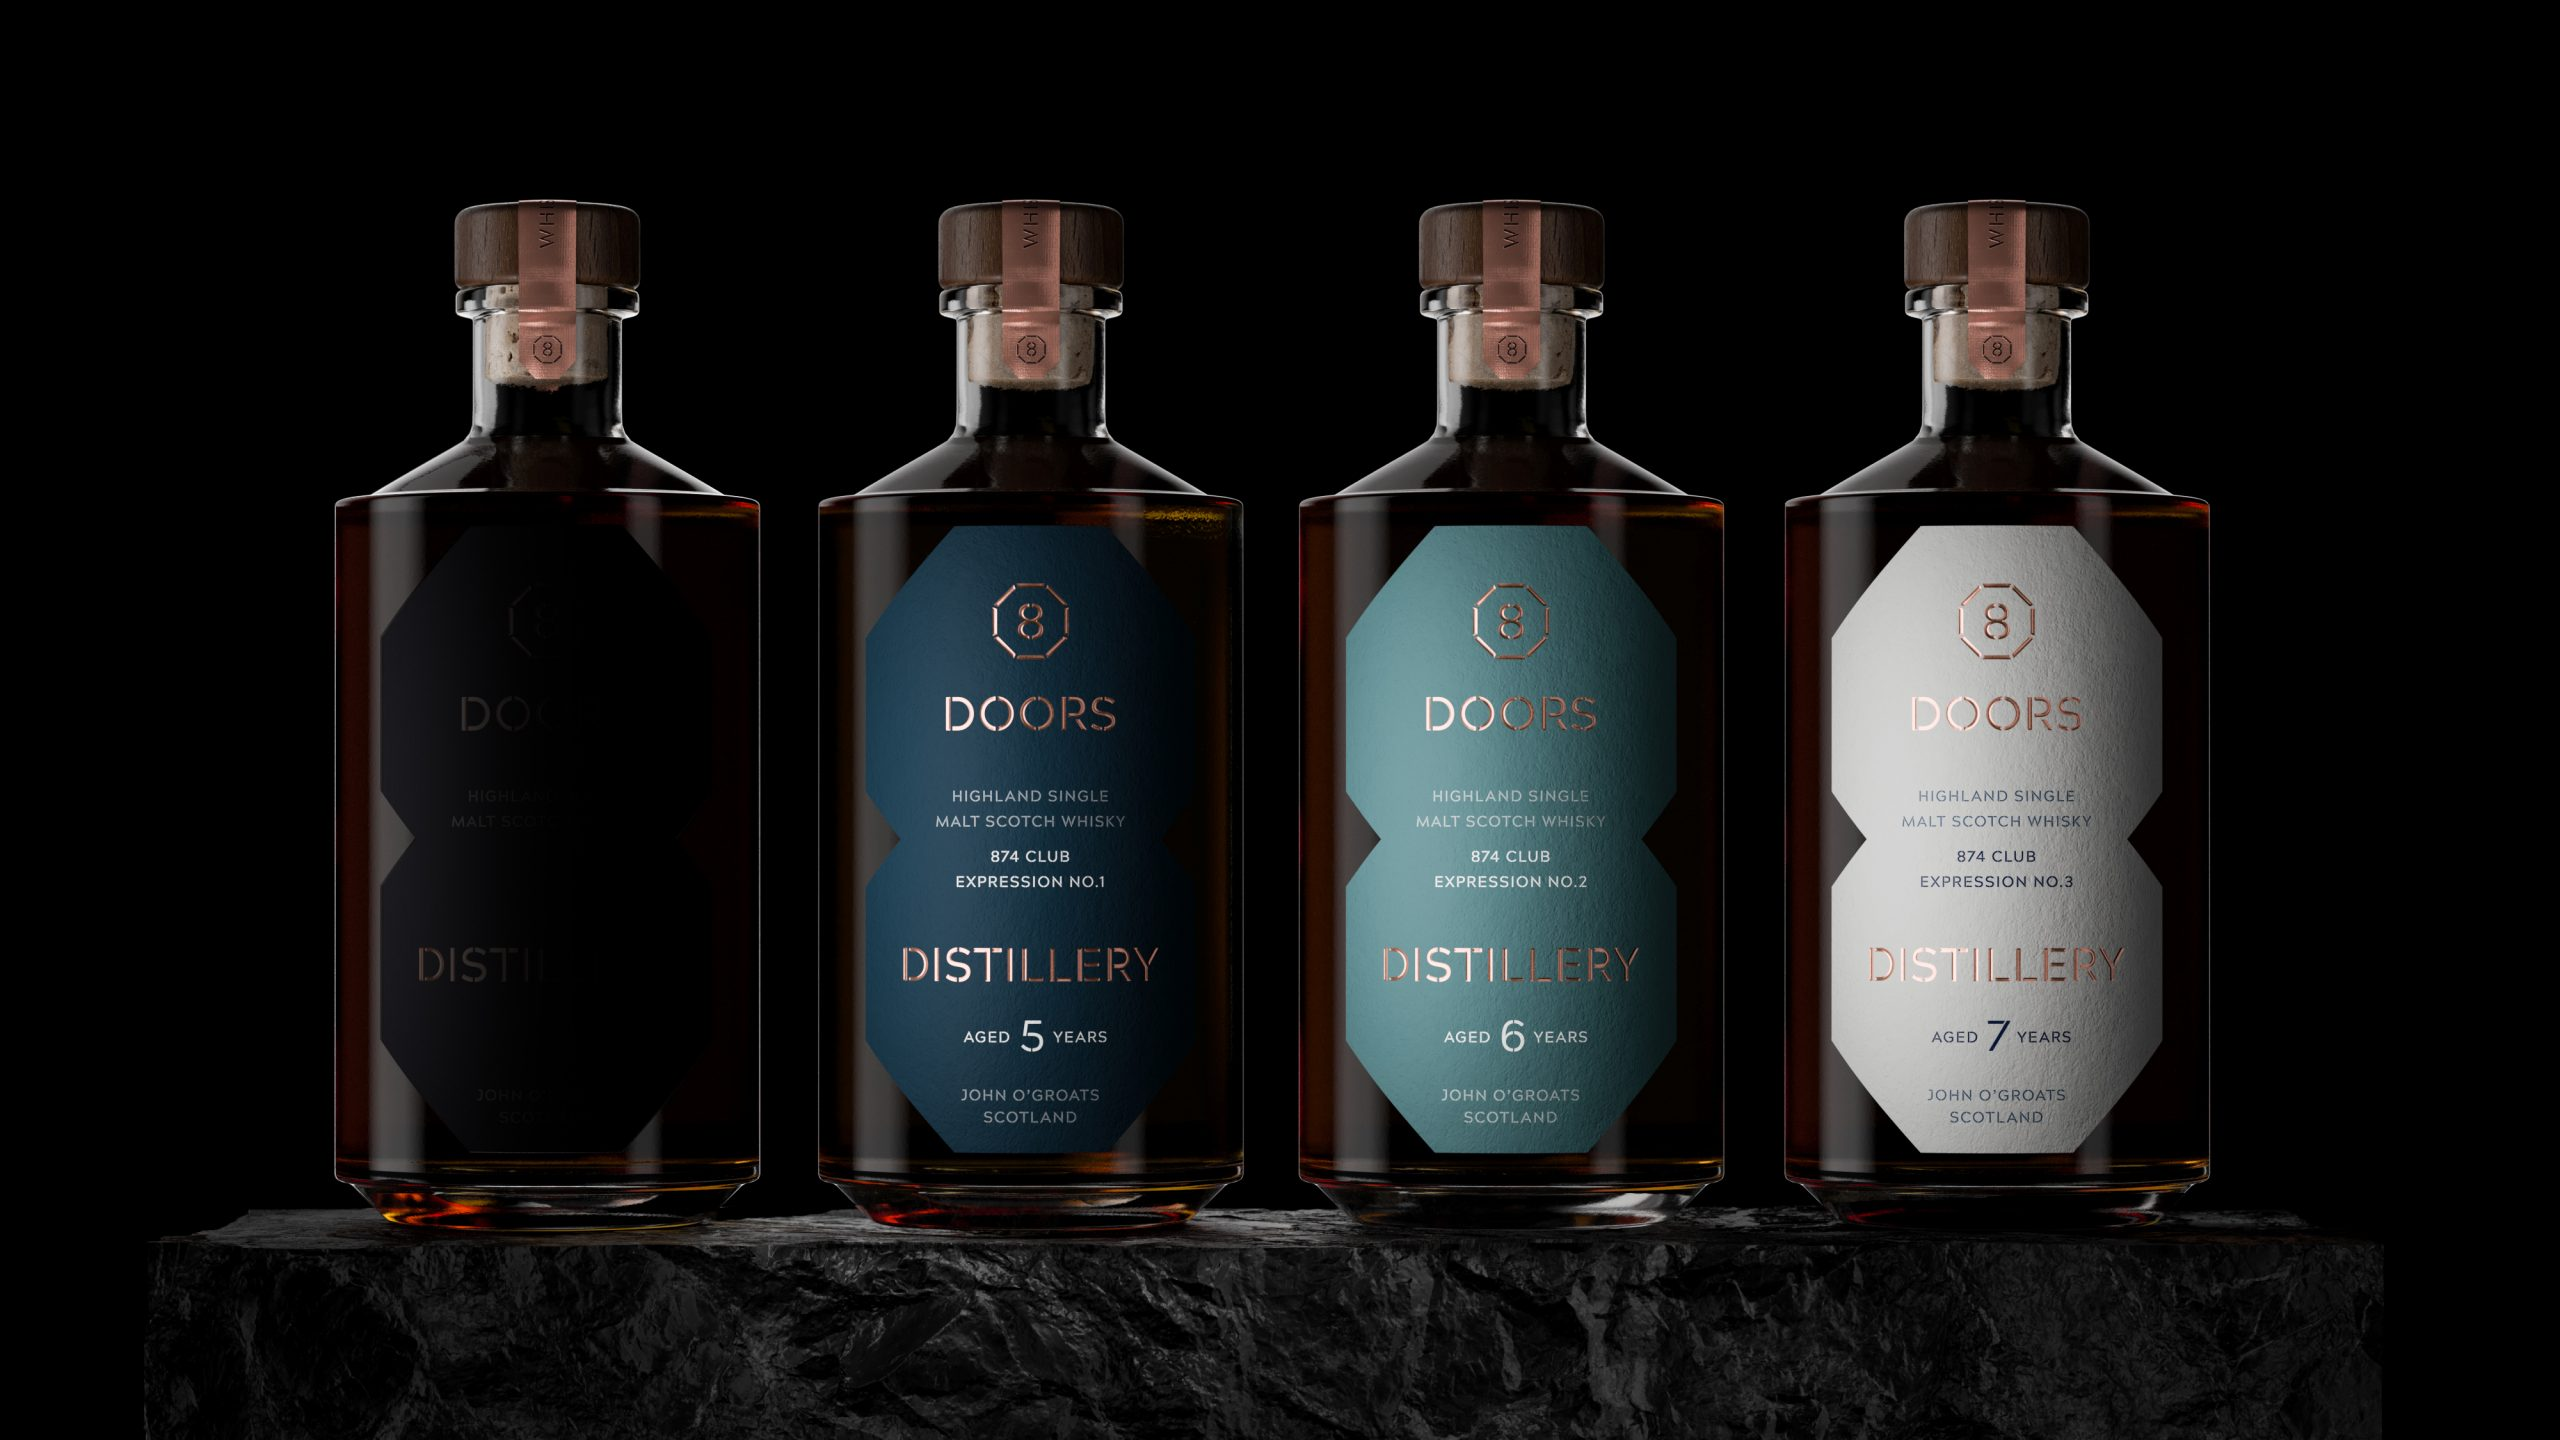 Four whisky bottles from 8 Doors distillery